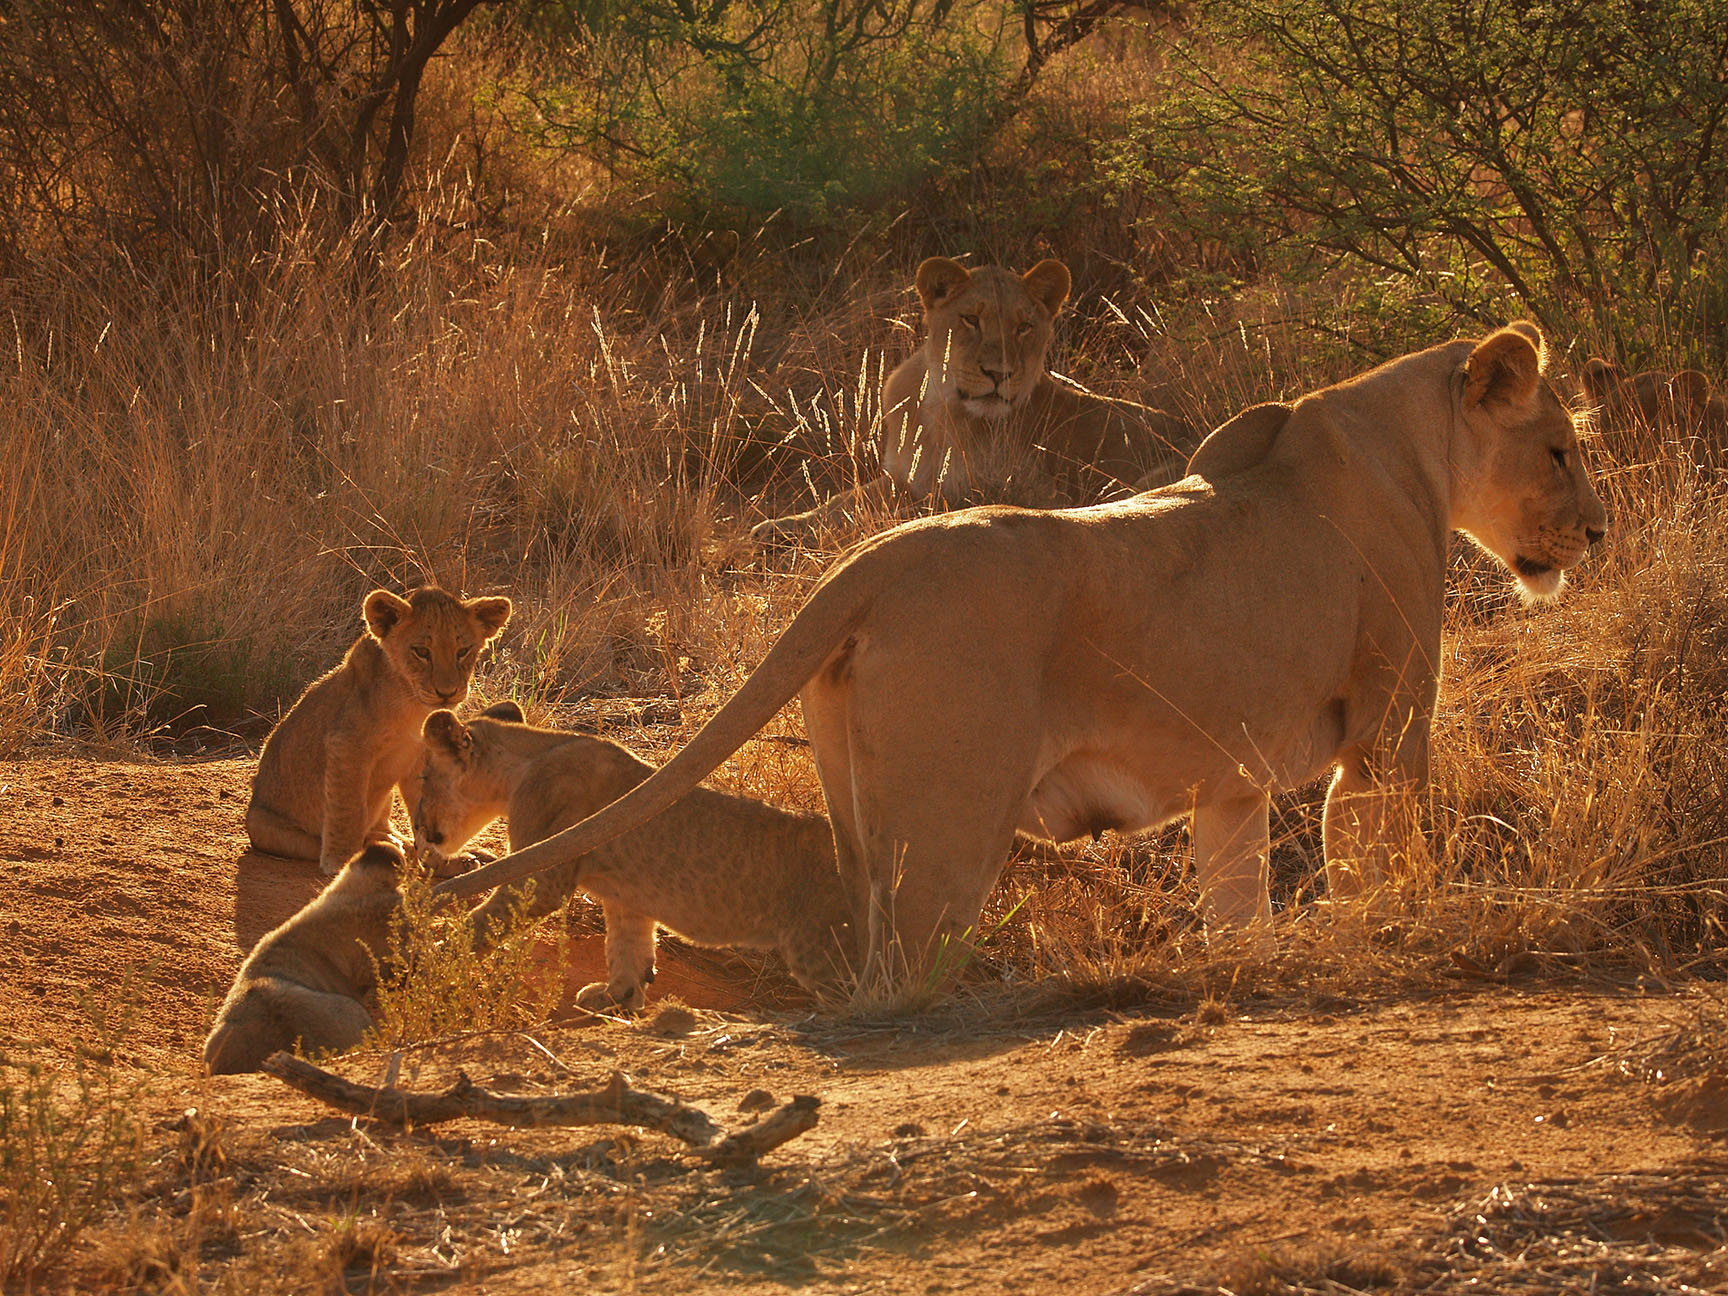 #South Africa, lioness wiuth cubs